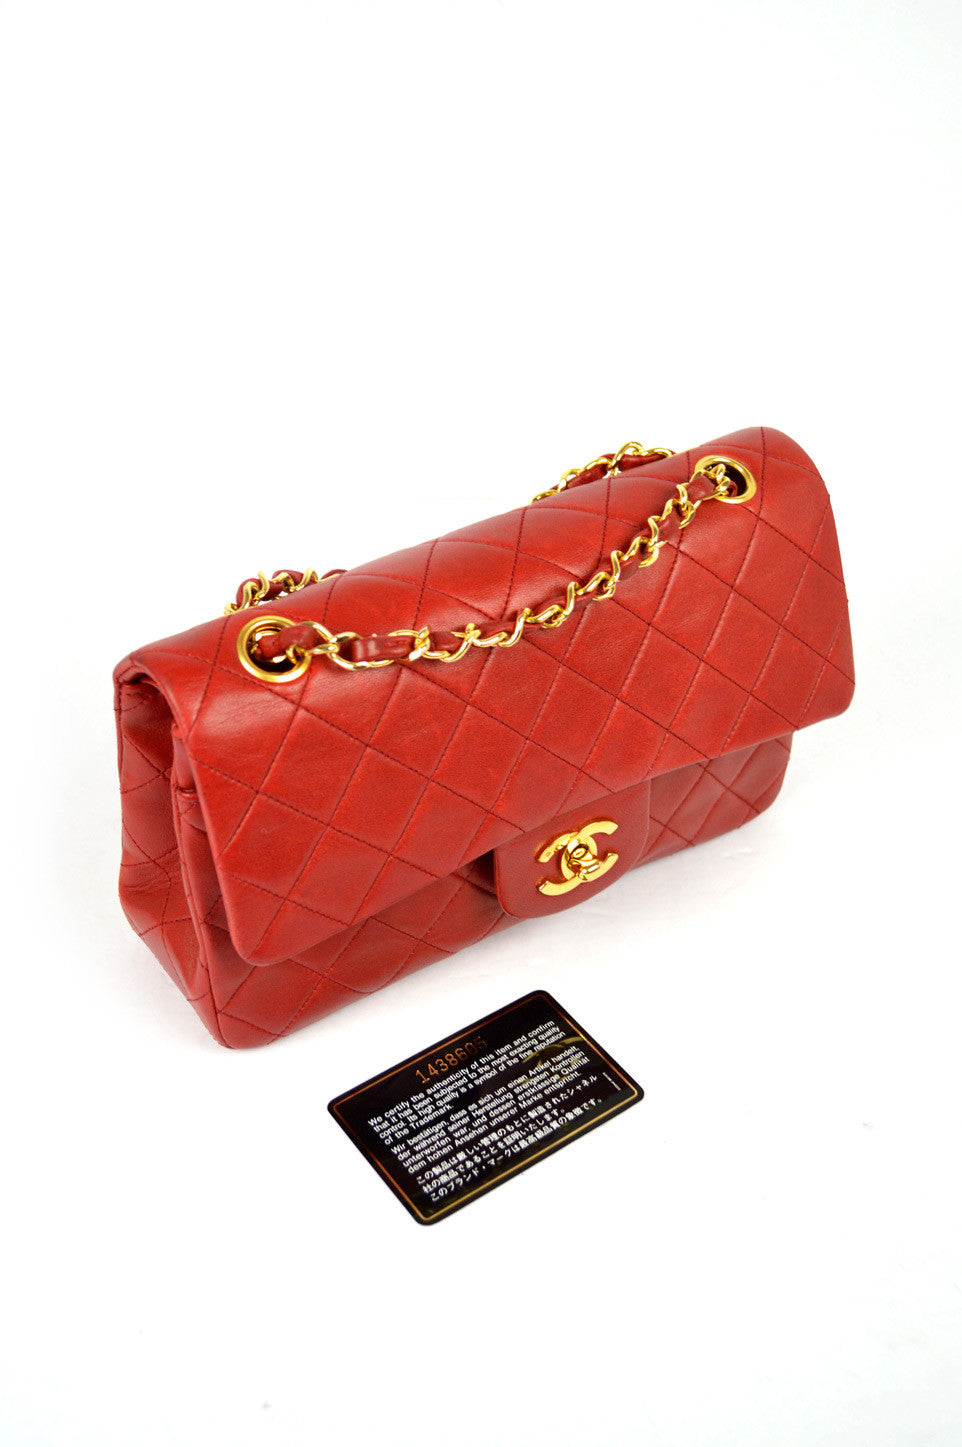 "Classic 2.55 Red Lambskin 9"" Double Flap Bag GHW"